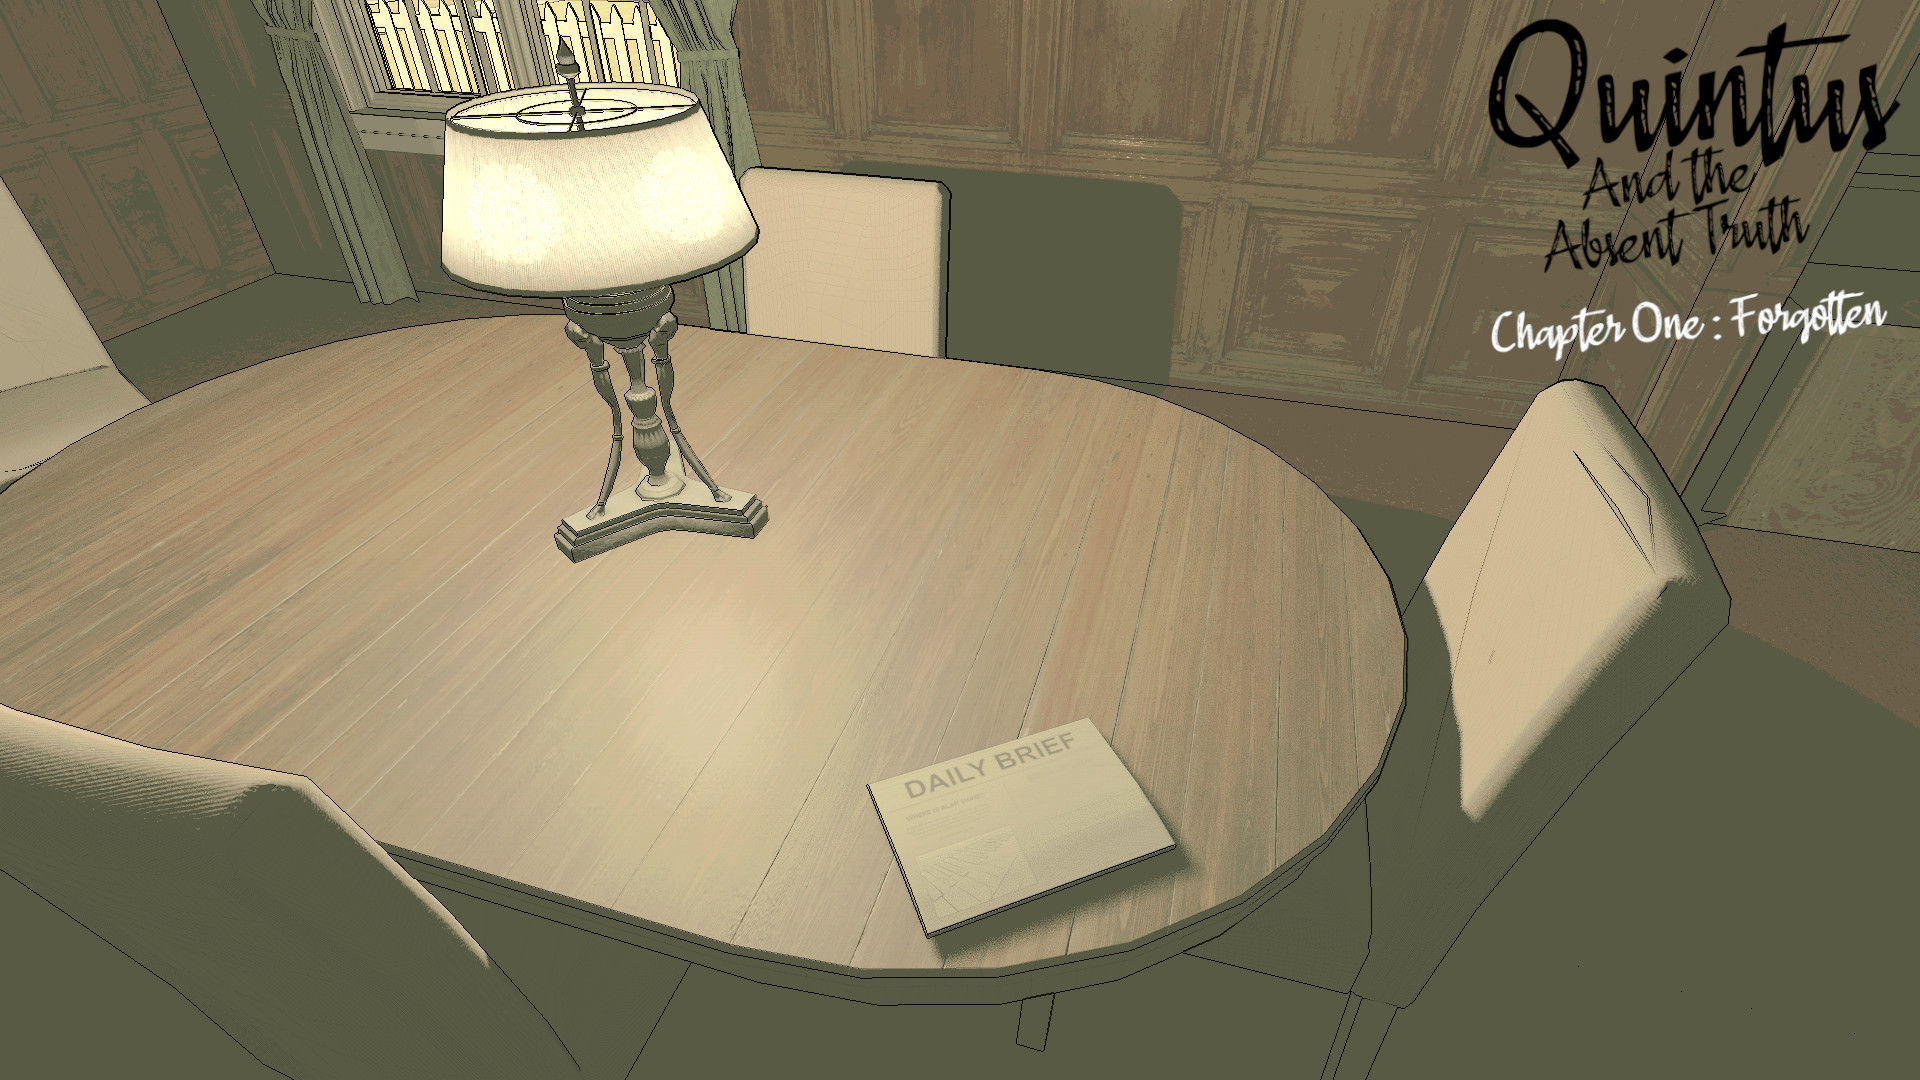 Quintus and the Absent Truth - Chapter One screenshot